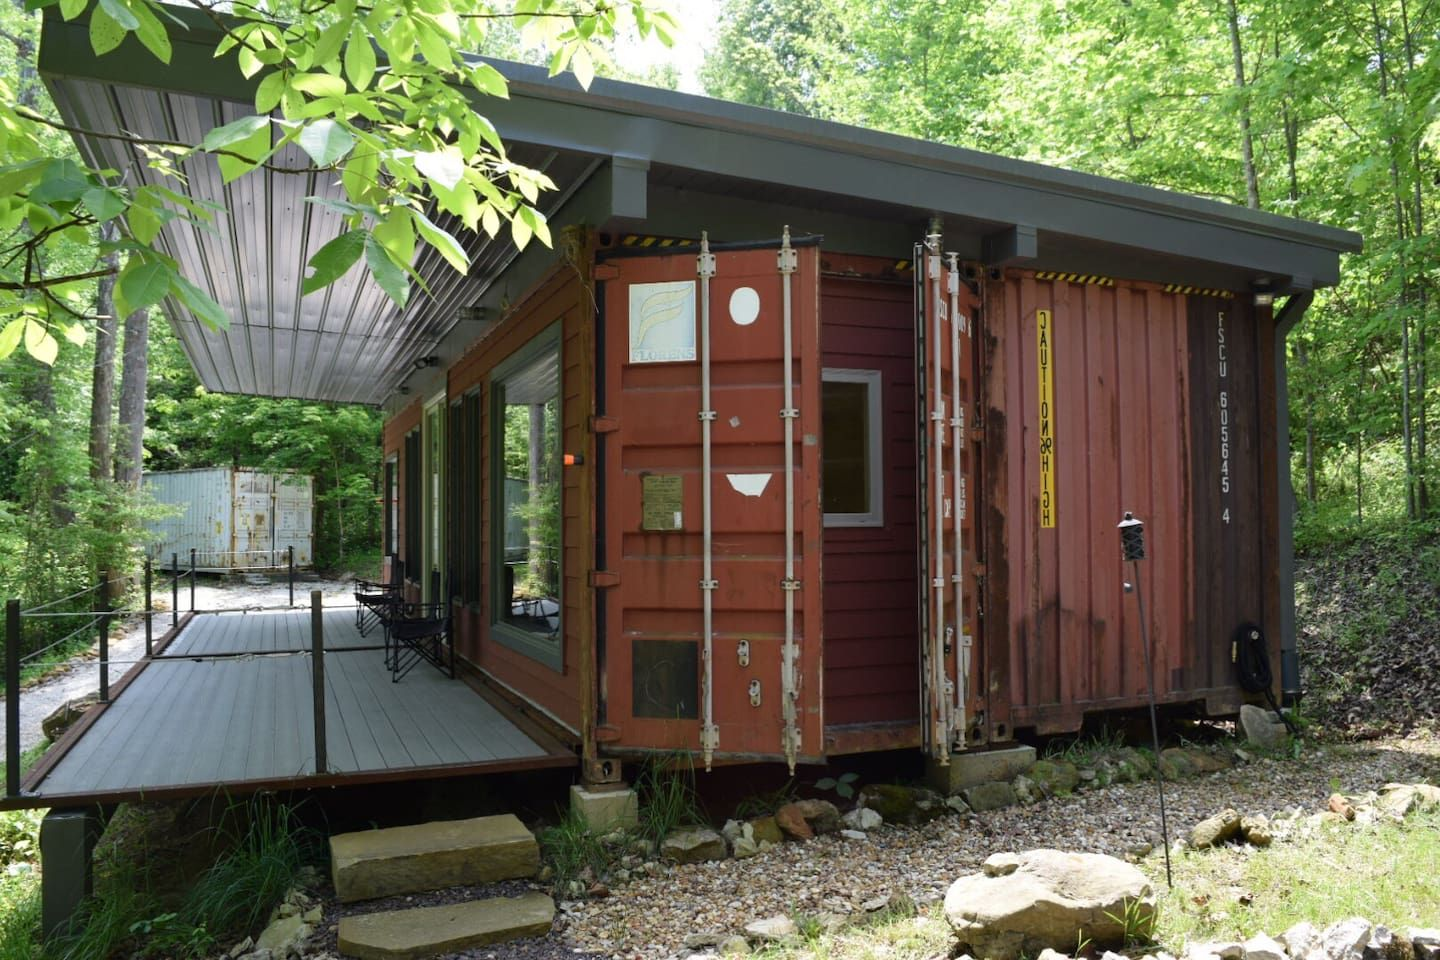 Shipping Container Cabin Cottages For Rent In Slade